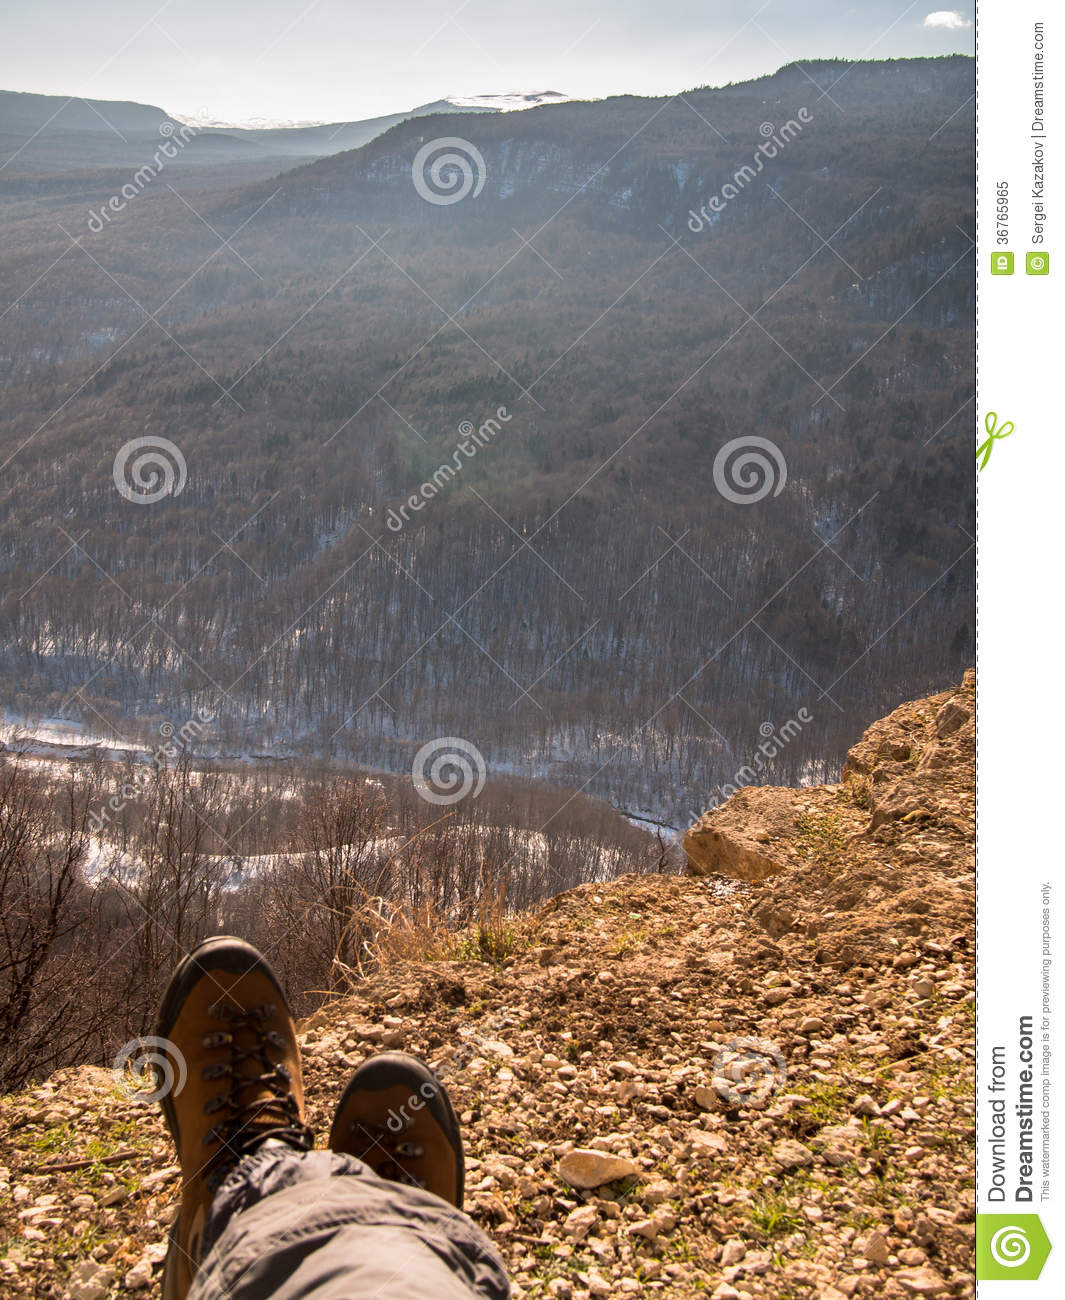 Feet In Shoes Lay On A Rock Stock Image